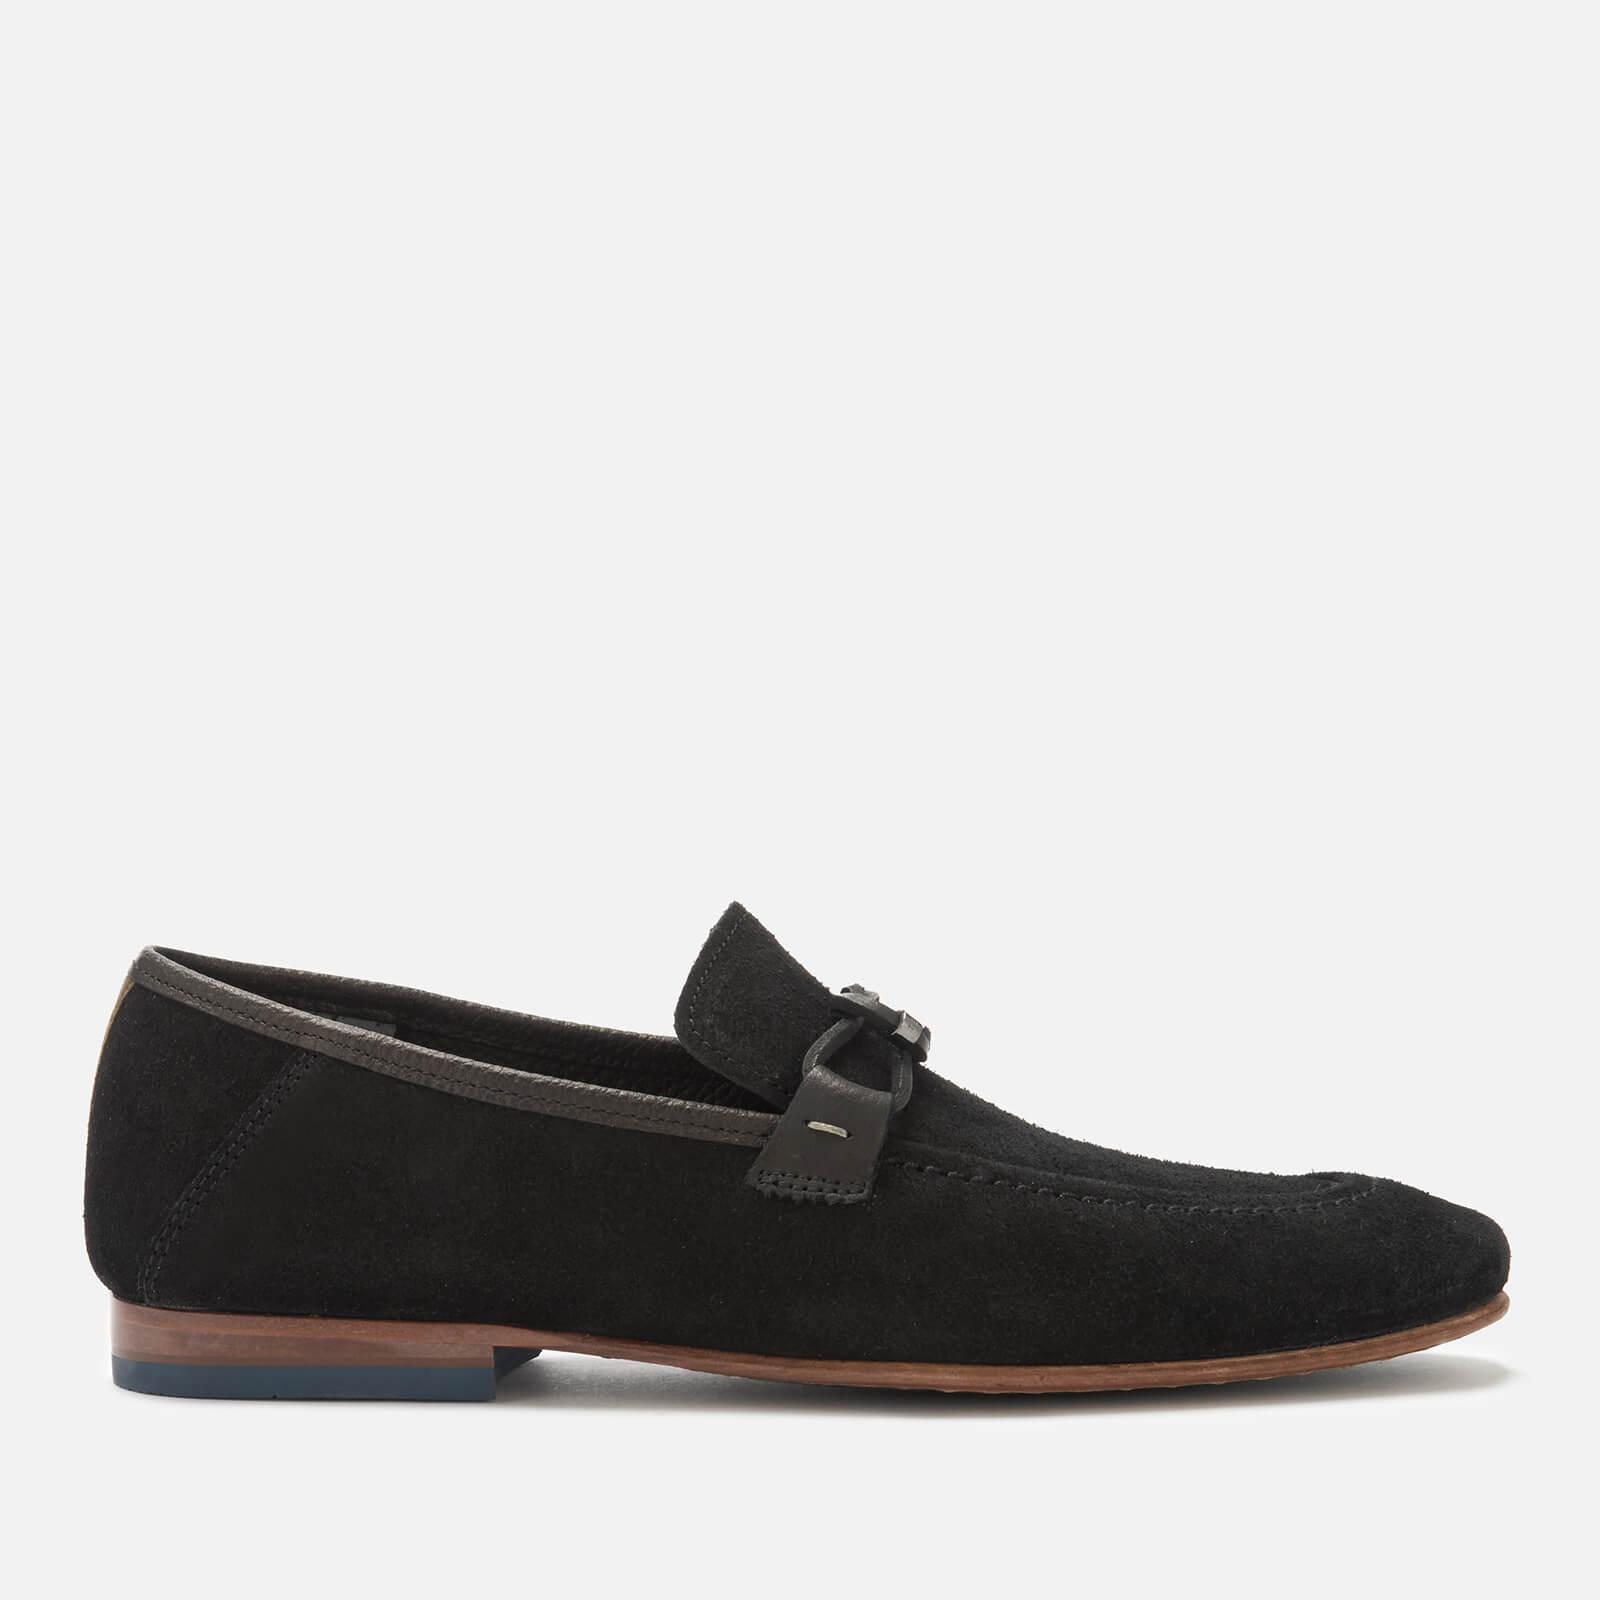 089580fc0351 Lyst - Ted Baker Siblac Suede Loafers in Black